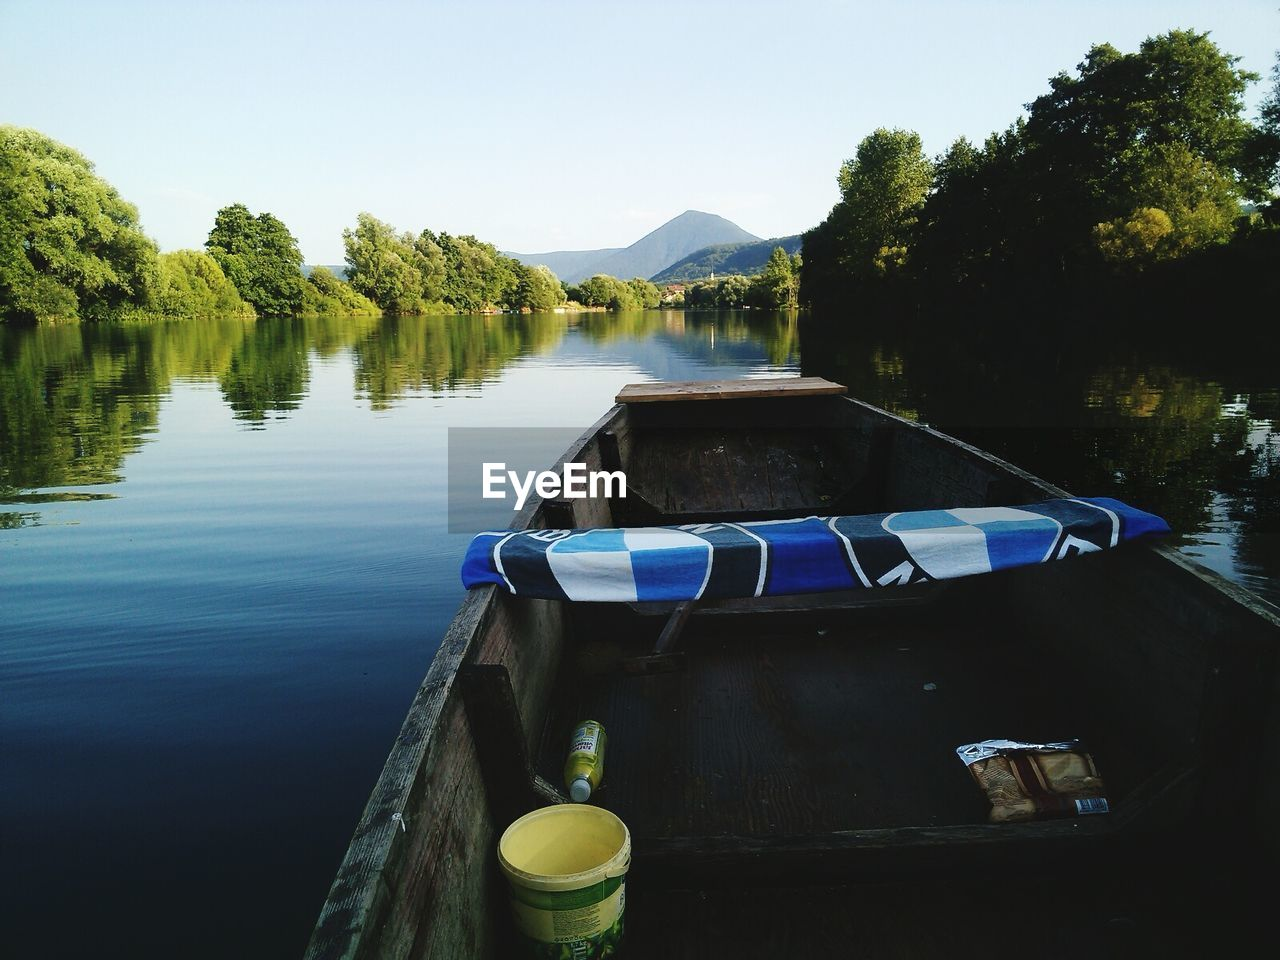 Wooden boat on lake by trees and mountains against clear sky